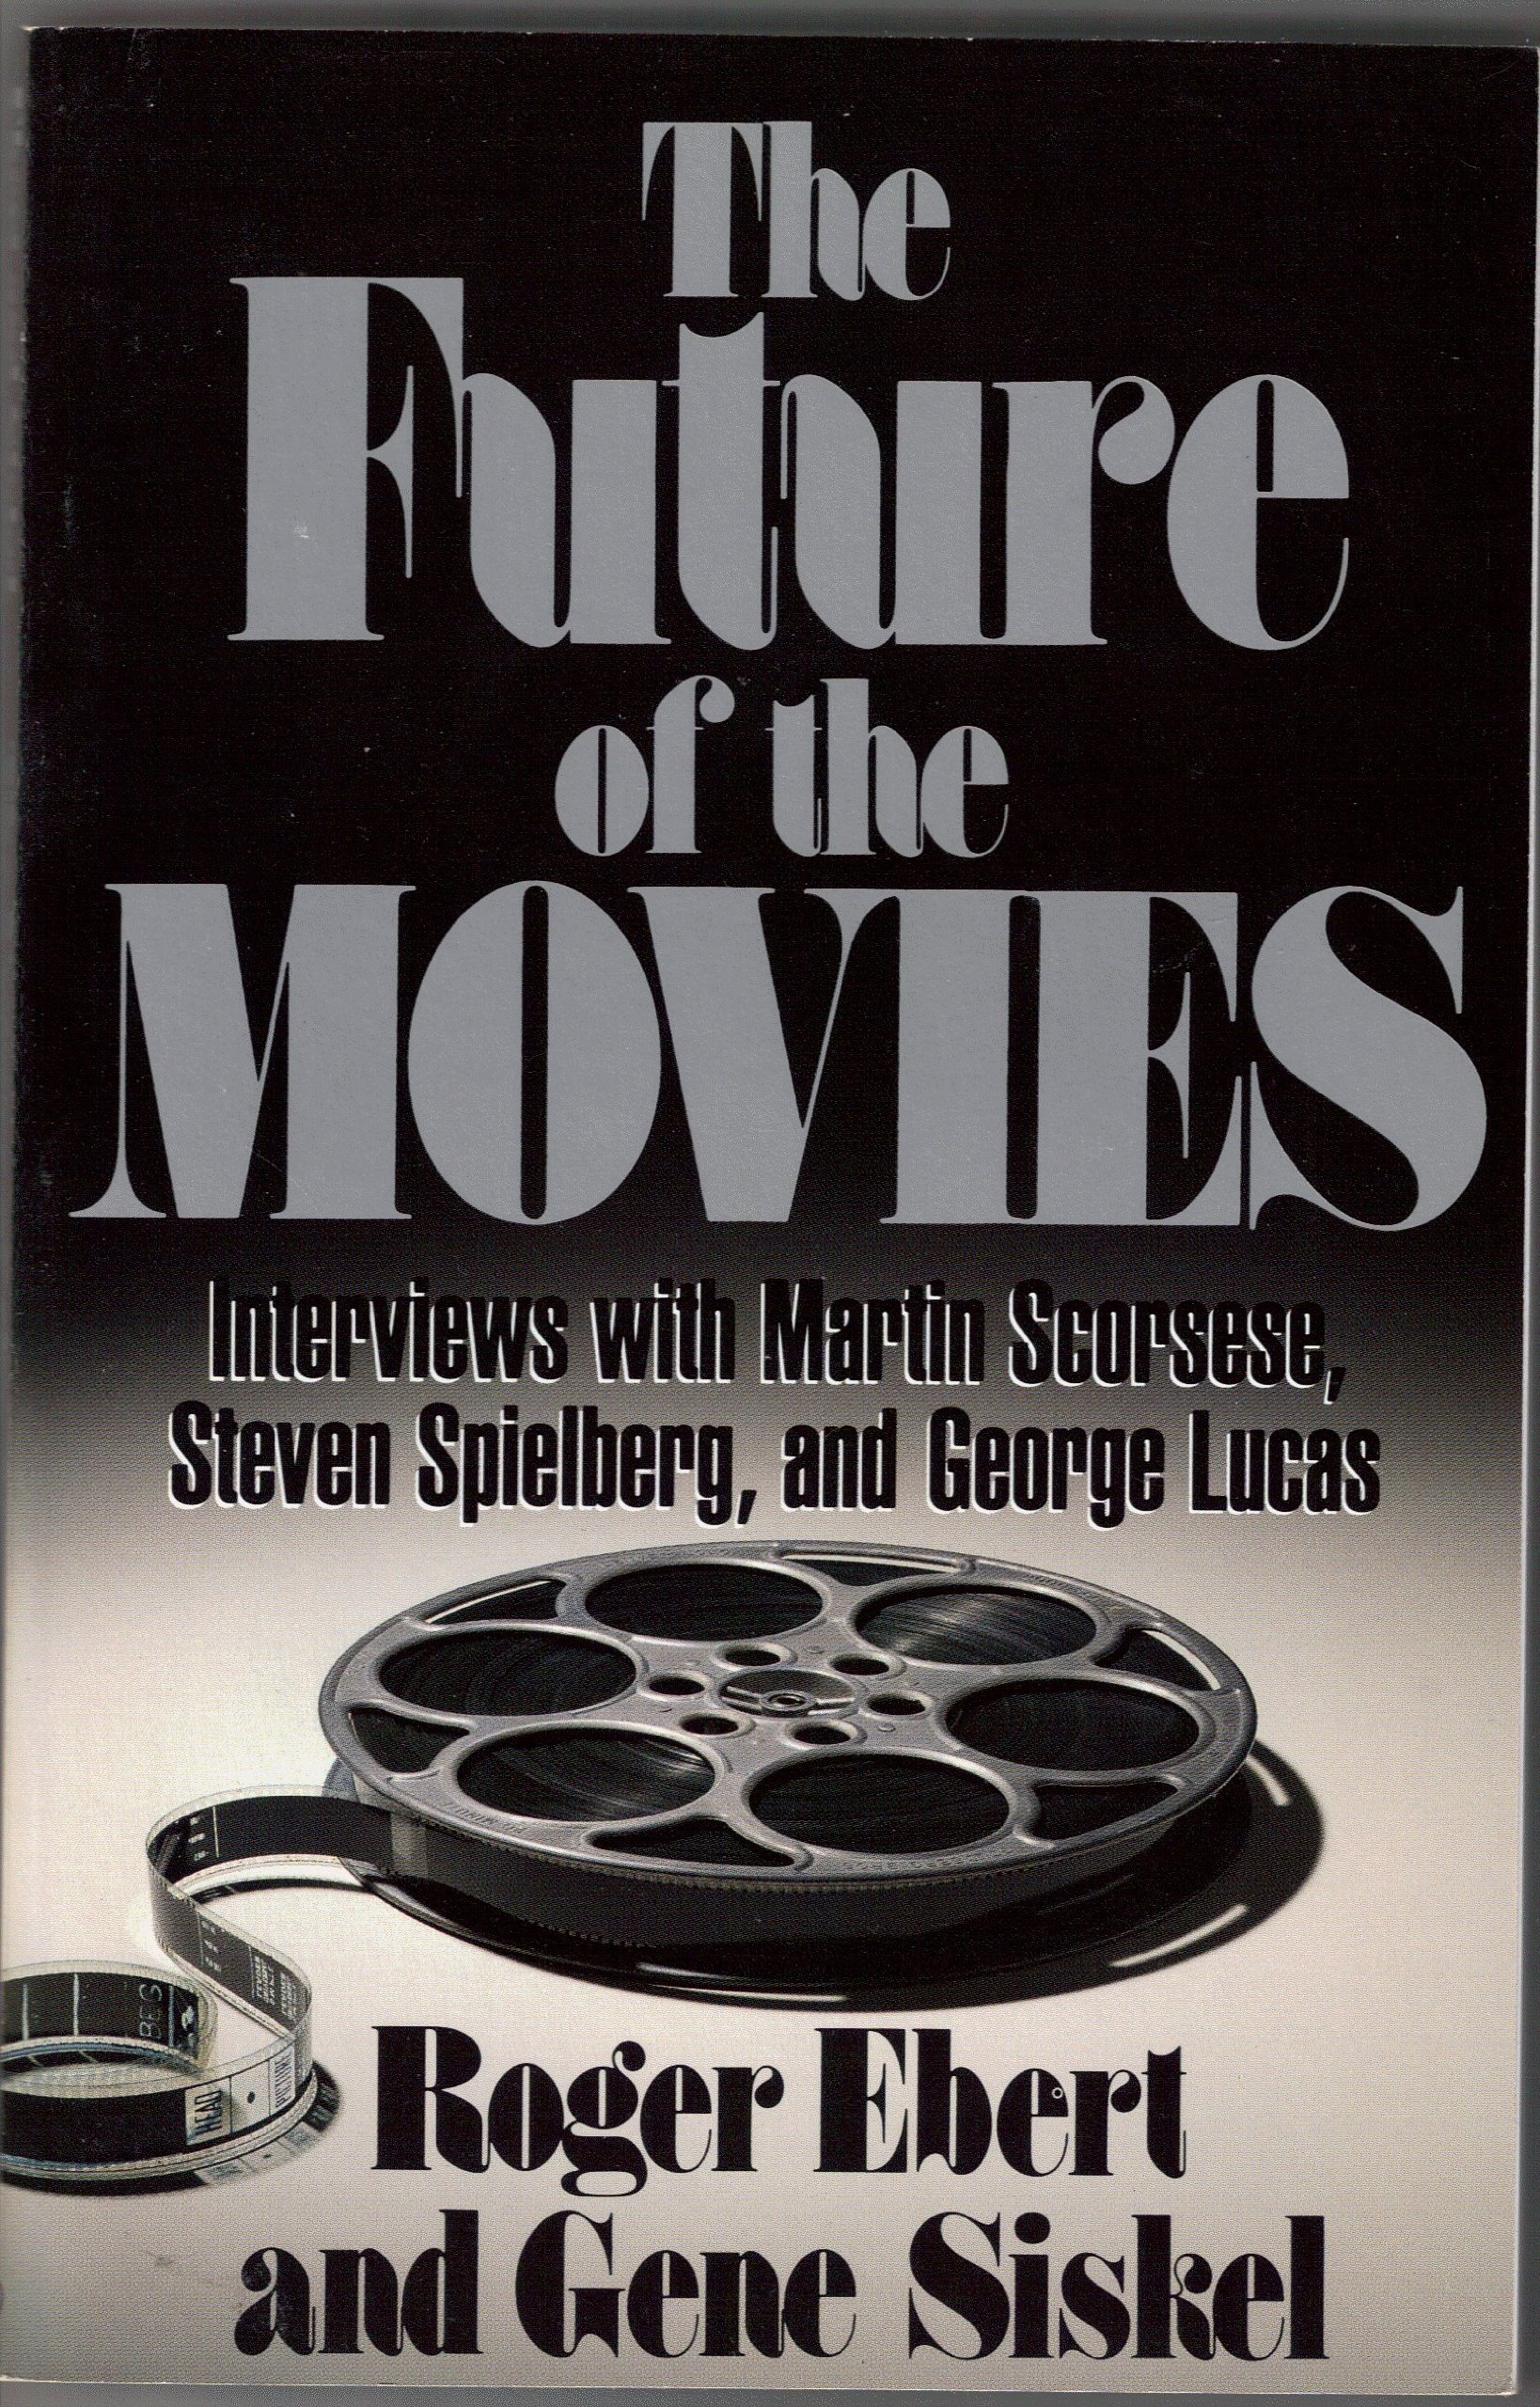 The Future of The Movies: Roger Ebert, Gene Siskel